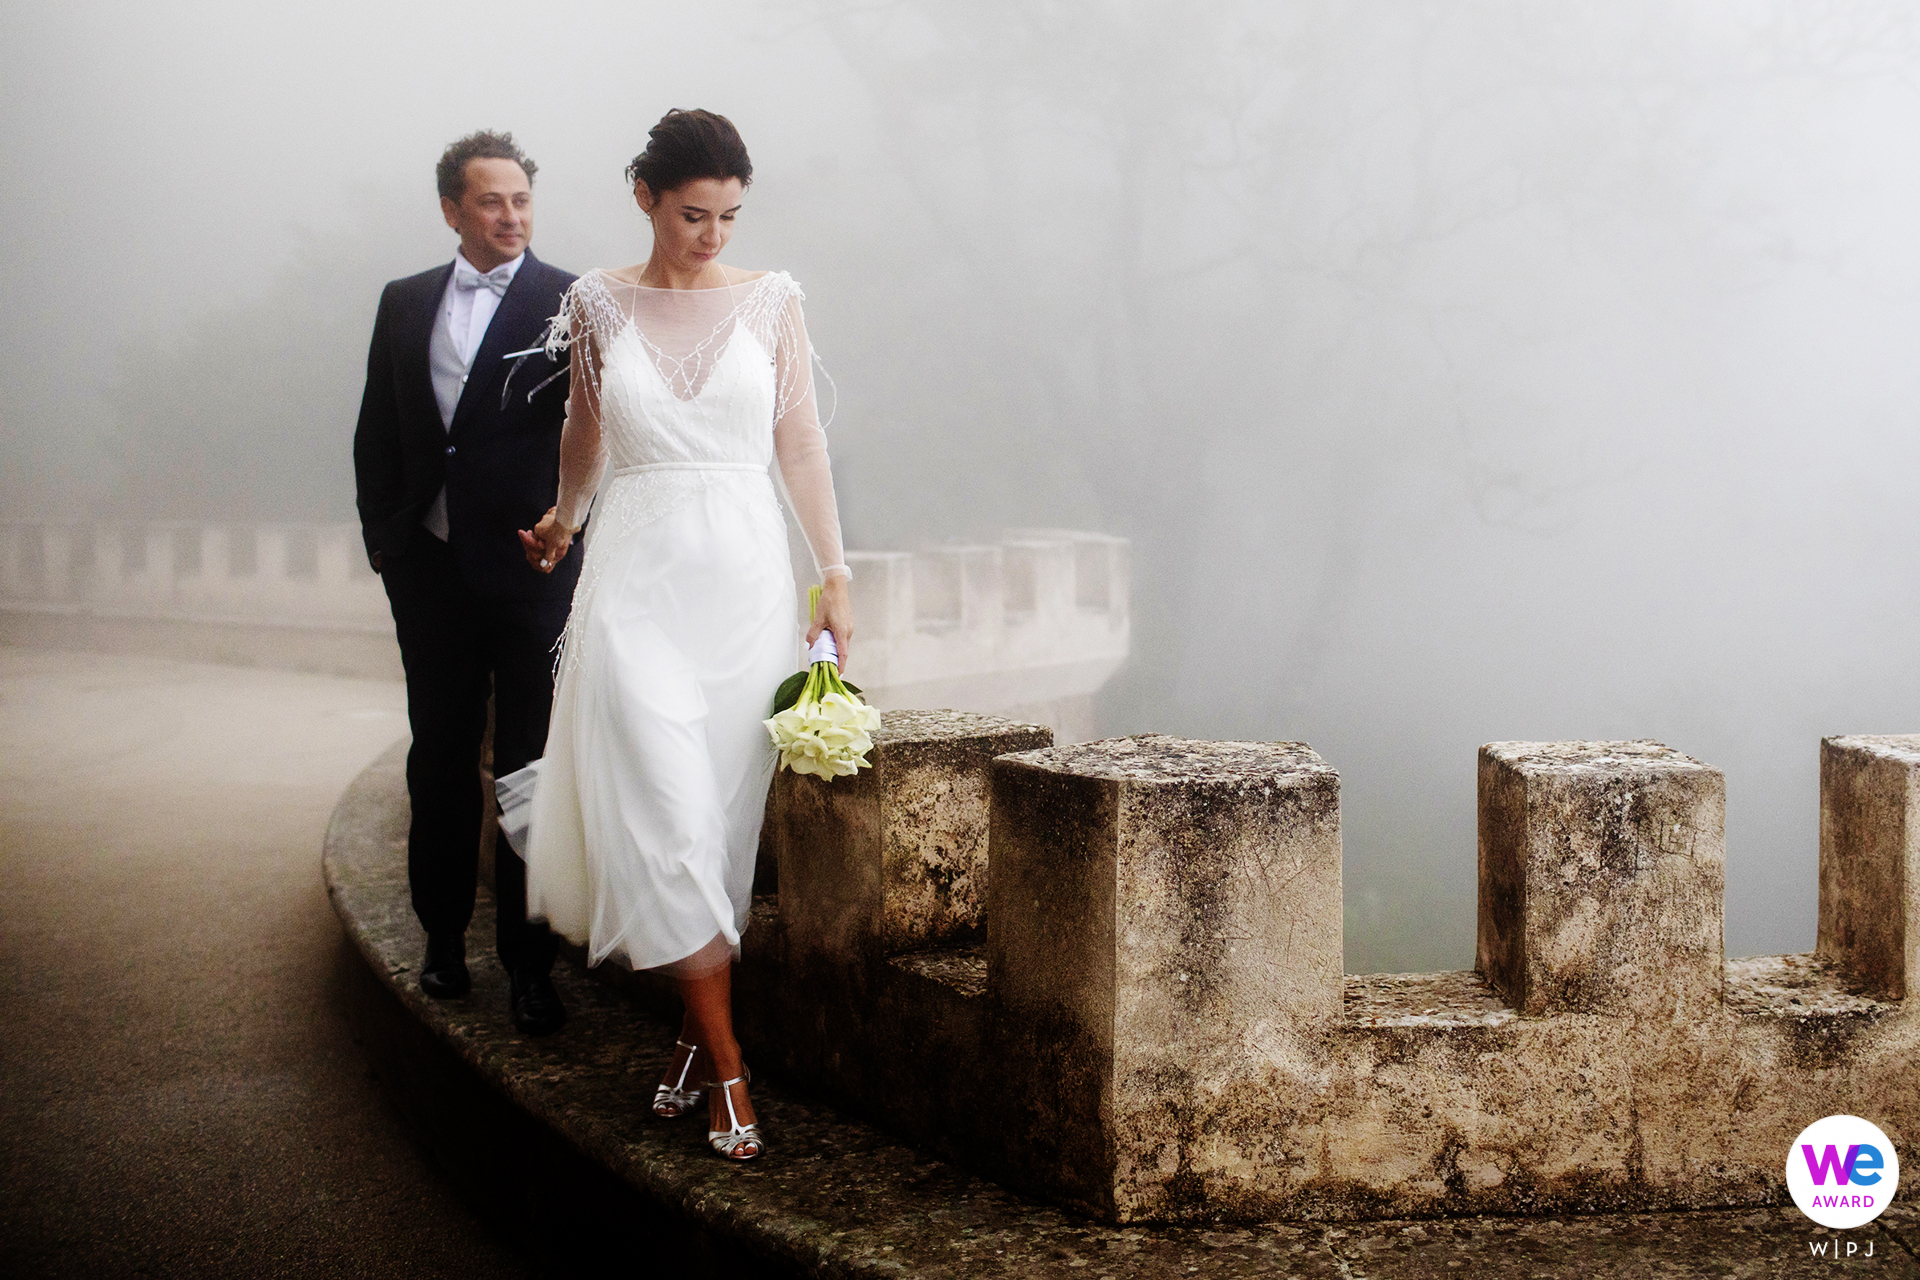 Mount Erice, Trapani, Sicily, Italy Elopement Picture Story | Sicily is sun and sea; but Trapani, the city between two seas, stands on the slopes of Mount Erice, and that's where the bride wanted to go...even on a foggy day